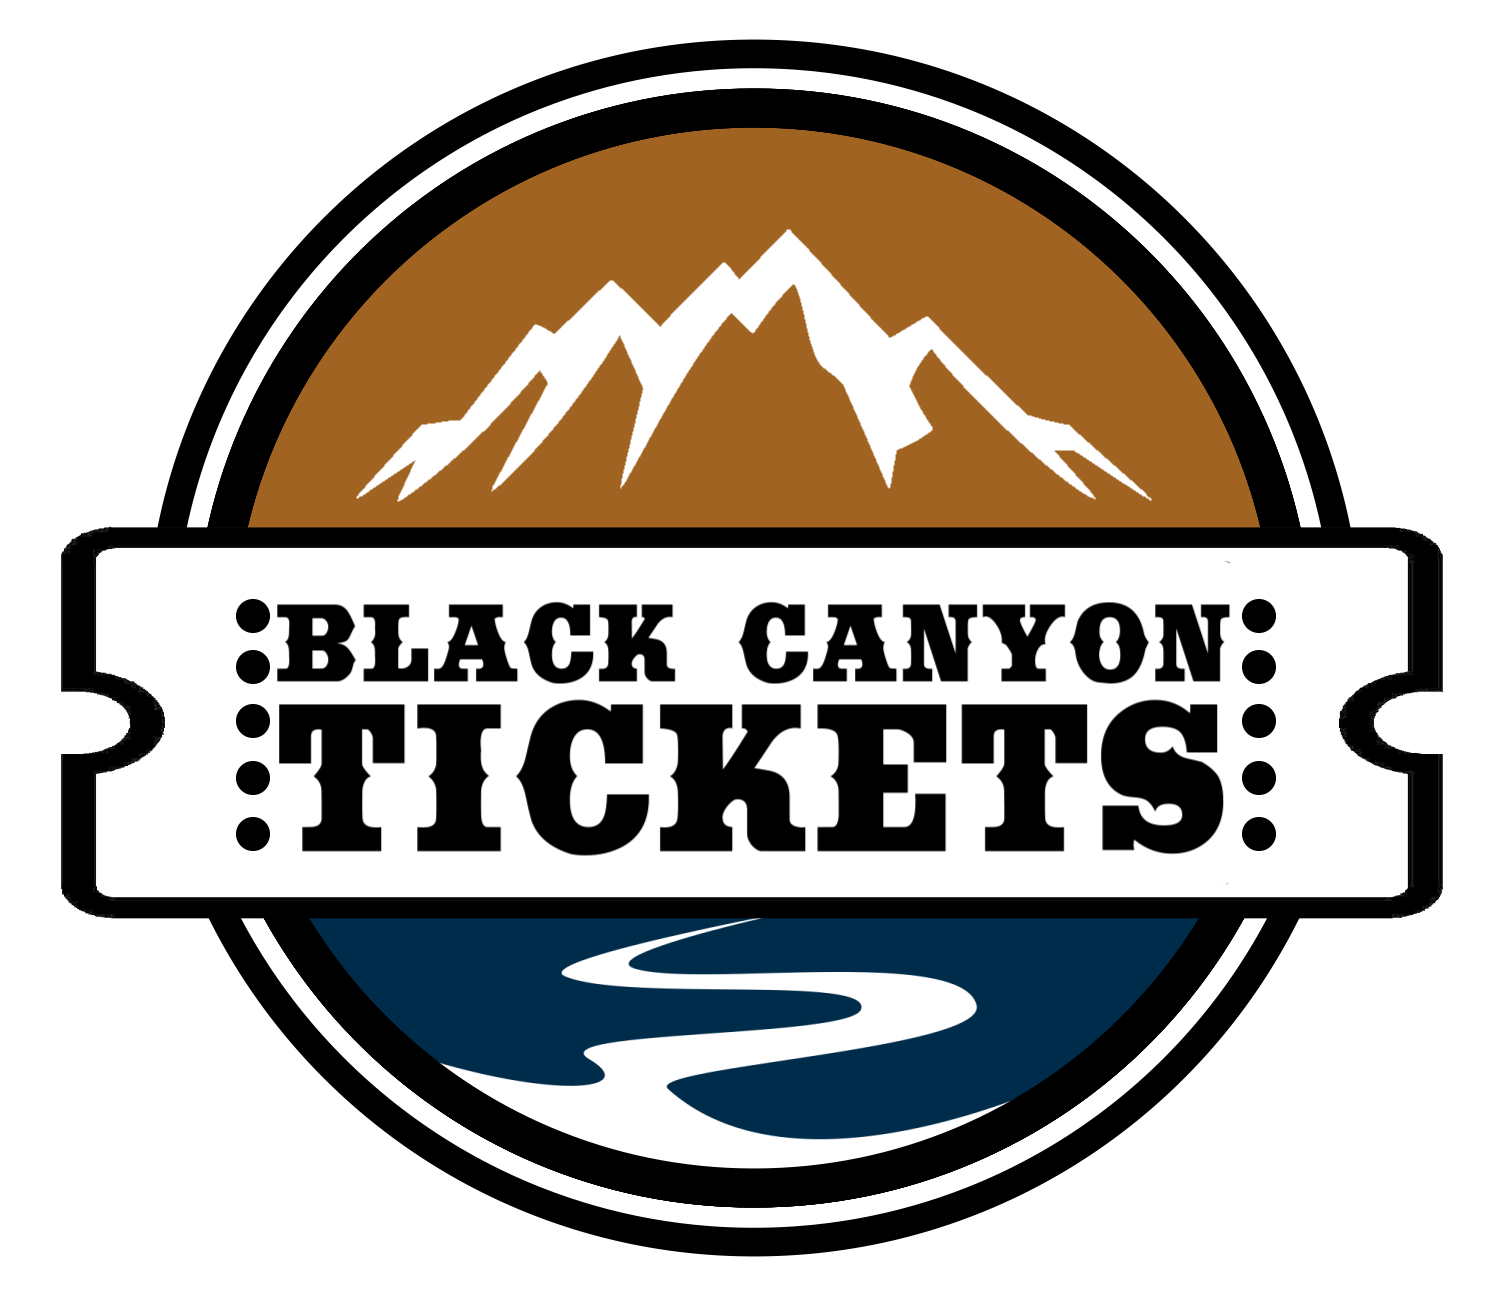 Upcoming Events – Black Canyon Tickets